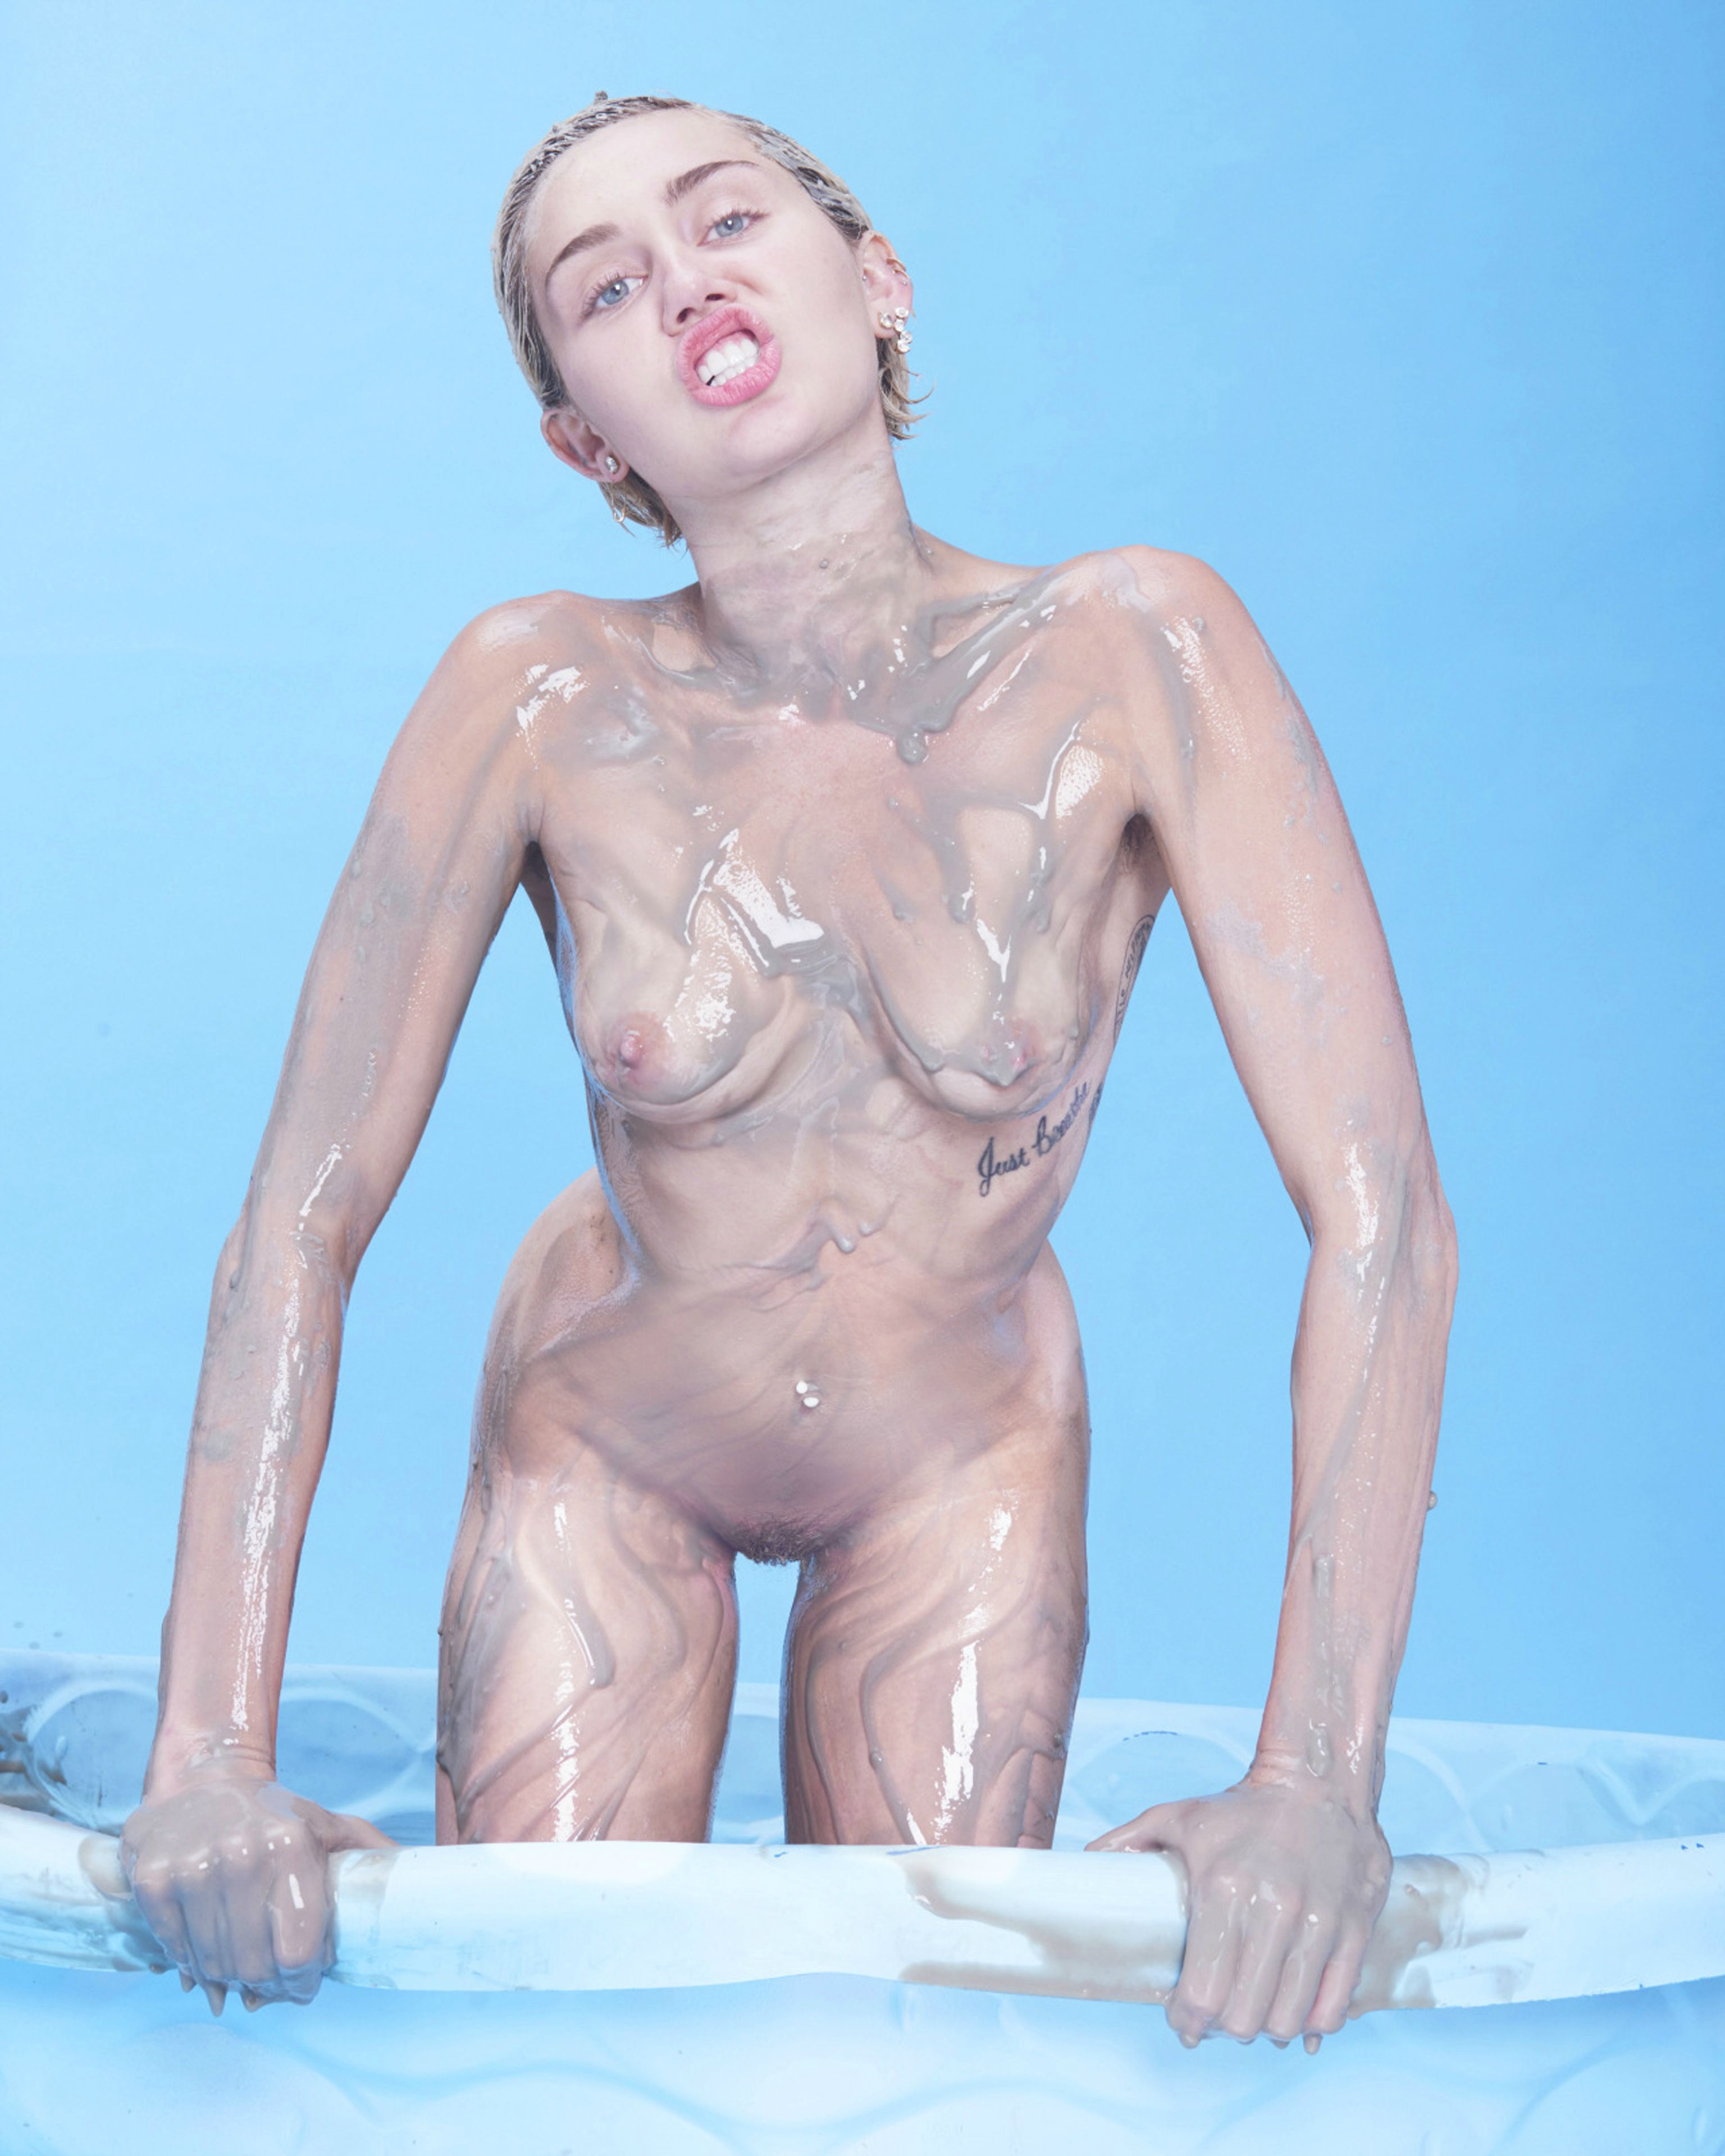 best of Pool nude Miley cyrus in